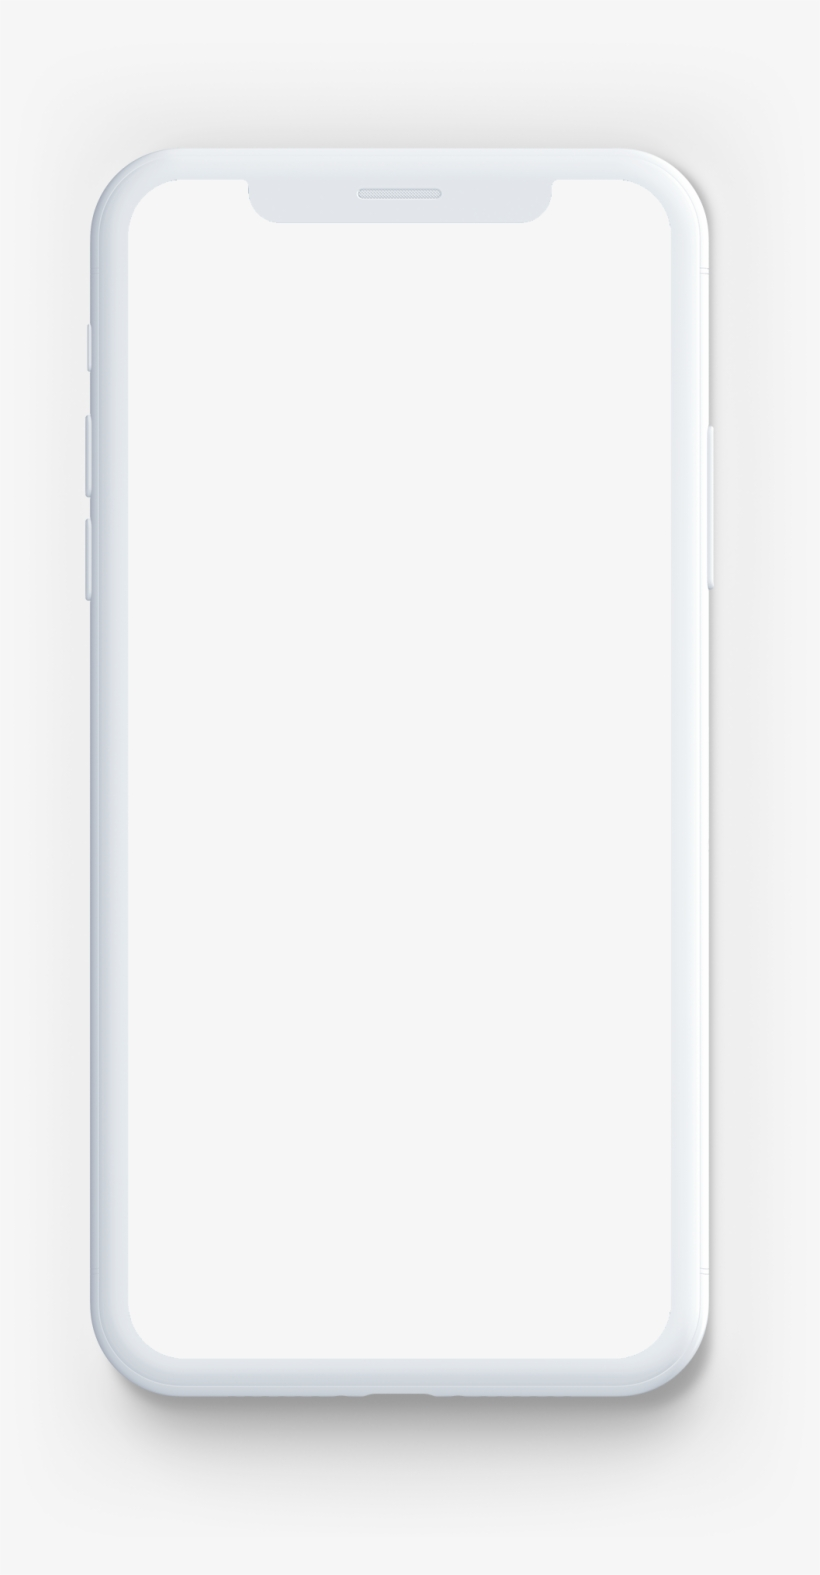 Once You've Added All Of Your Sleep Segments, Touch - Mobile Phone Case, transparent png #8018750